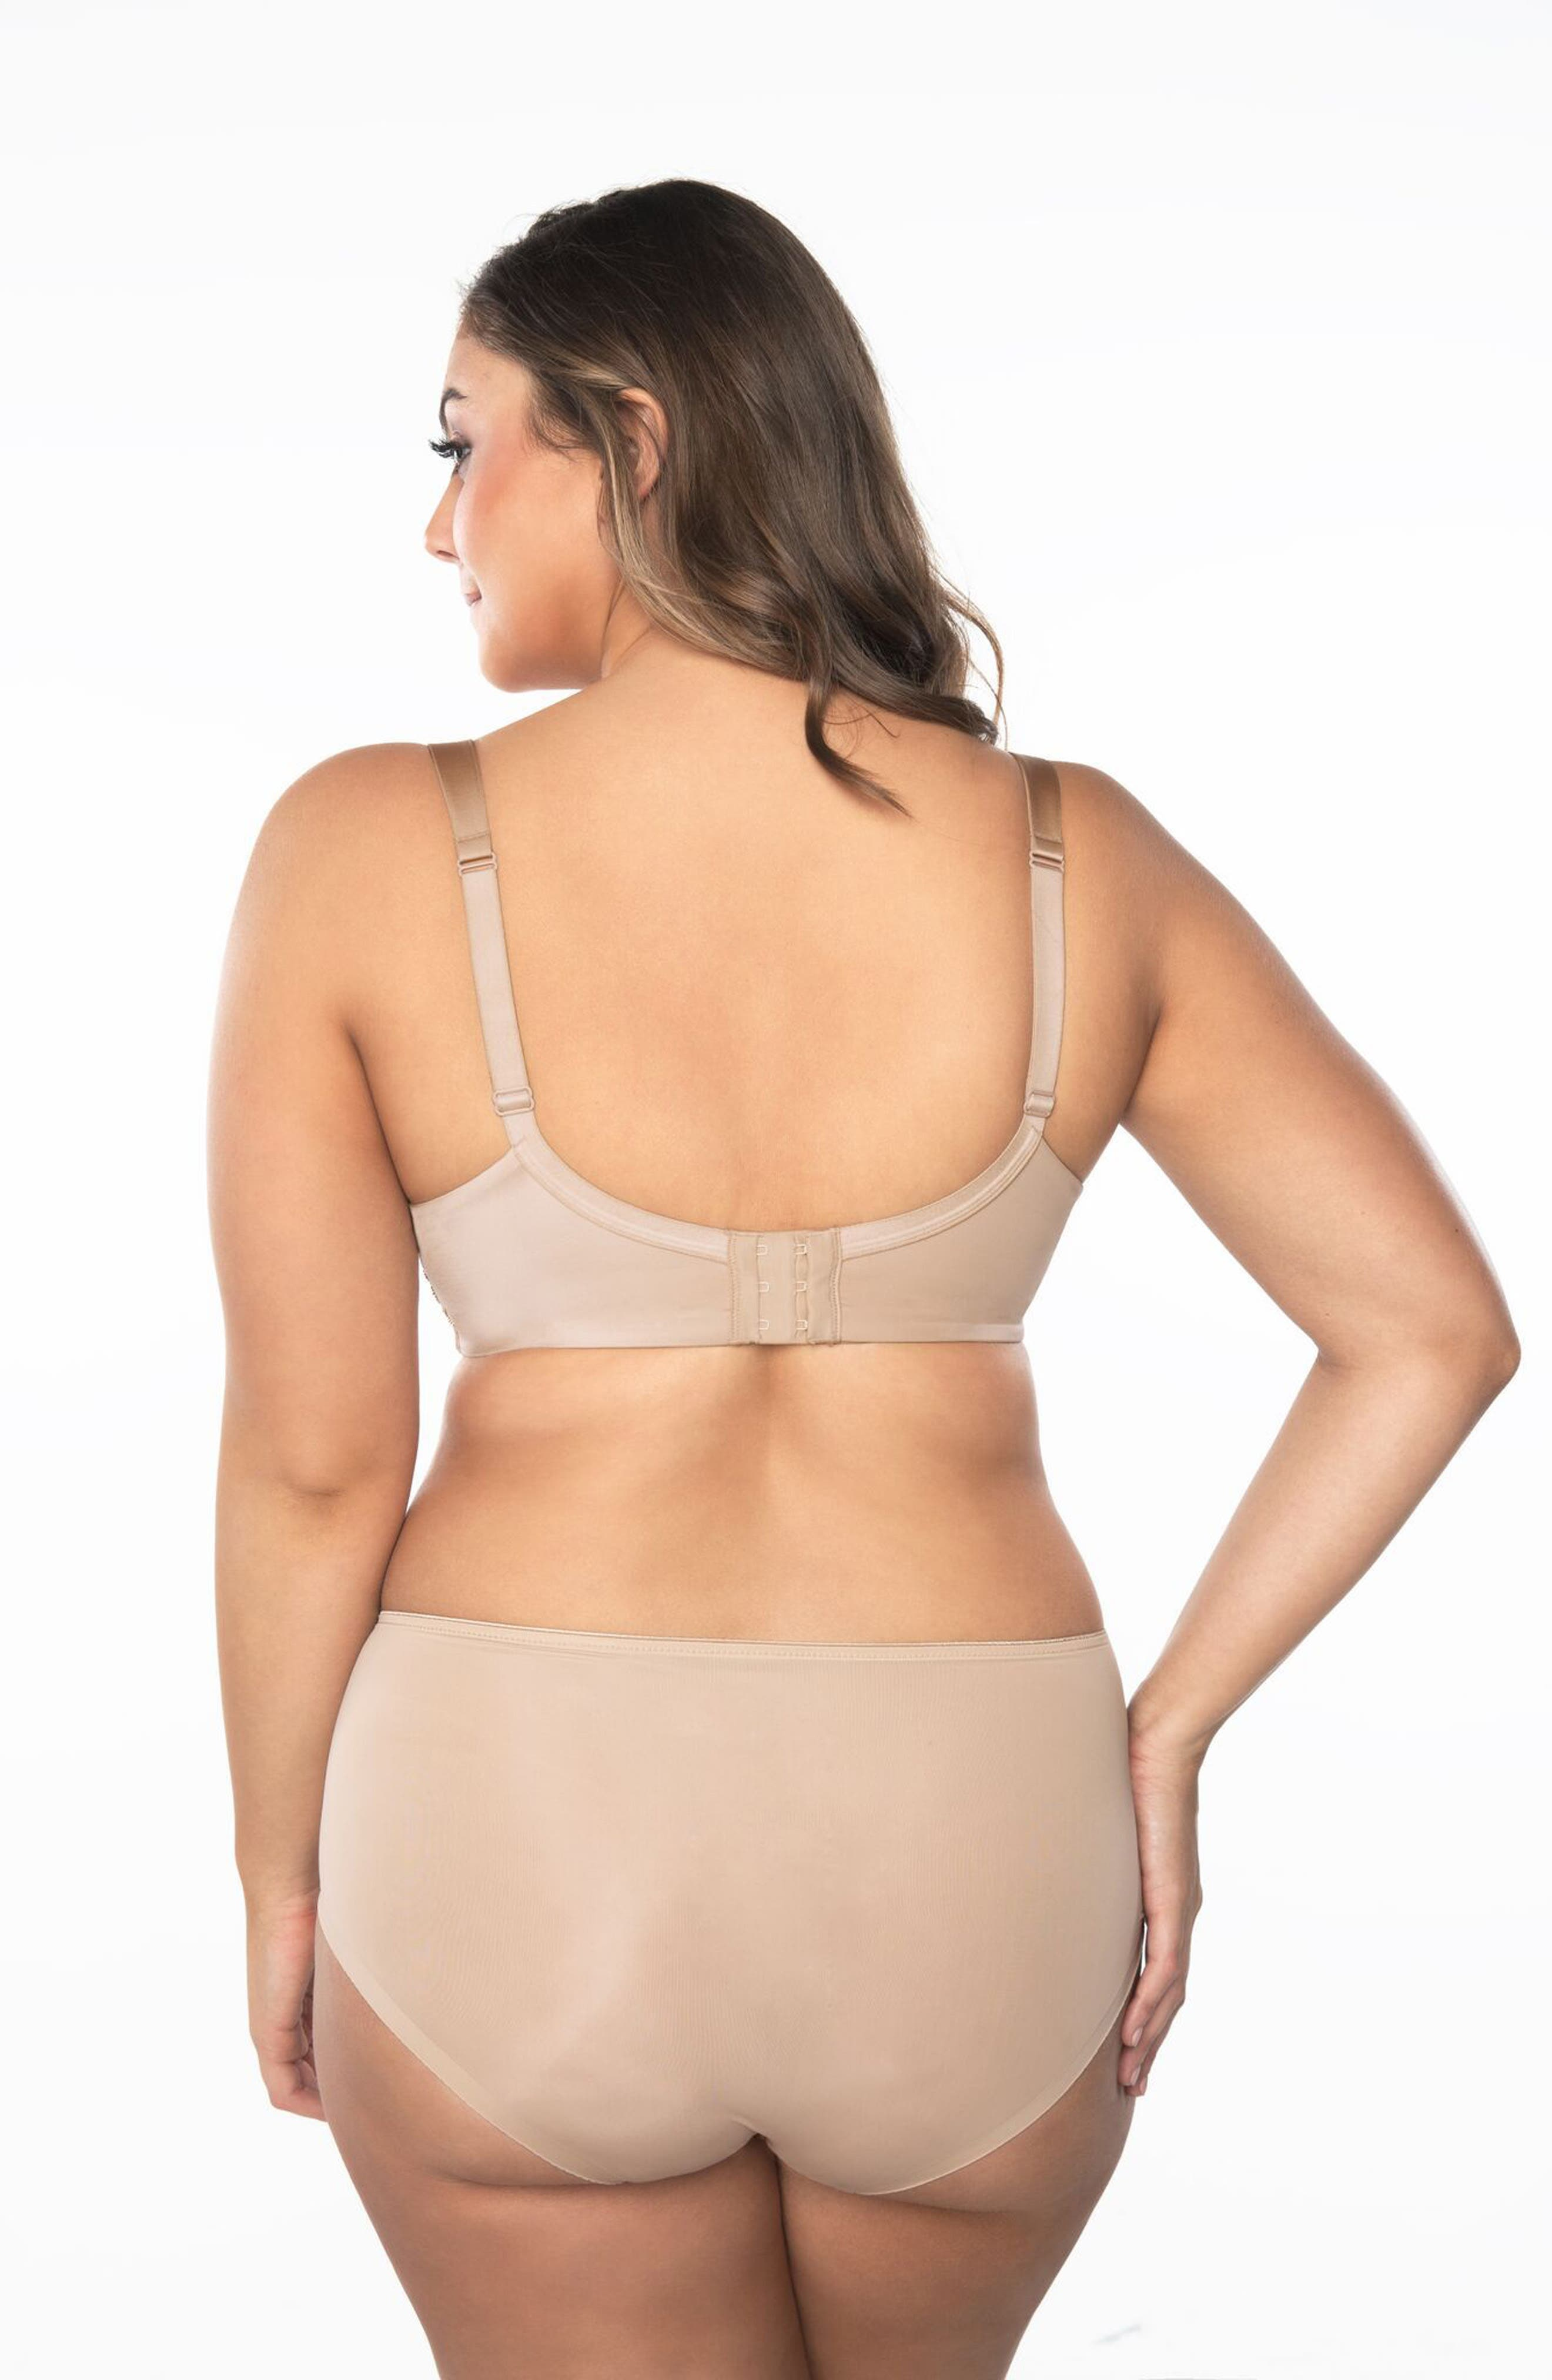 Everyday Glamour Underwire Bra,                             Alternate thumbnail 10, color,